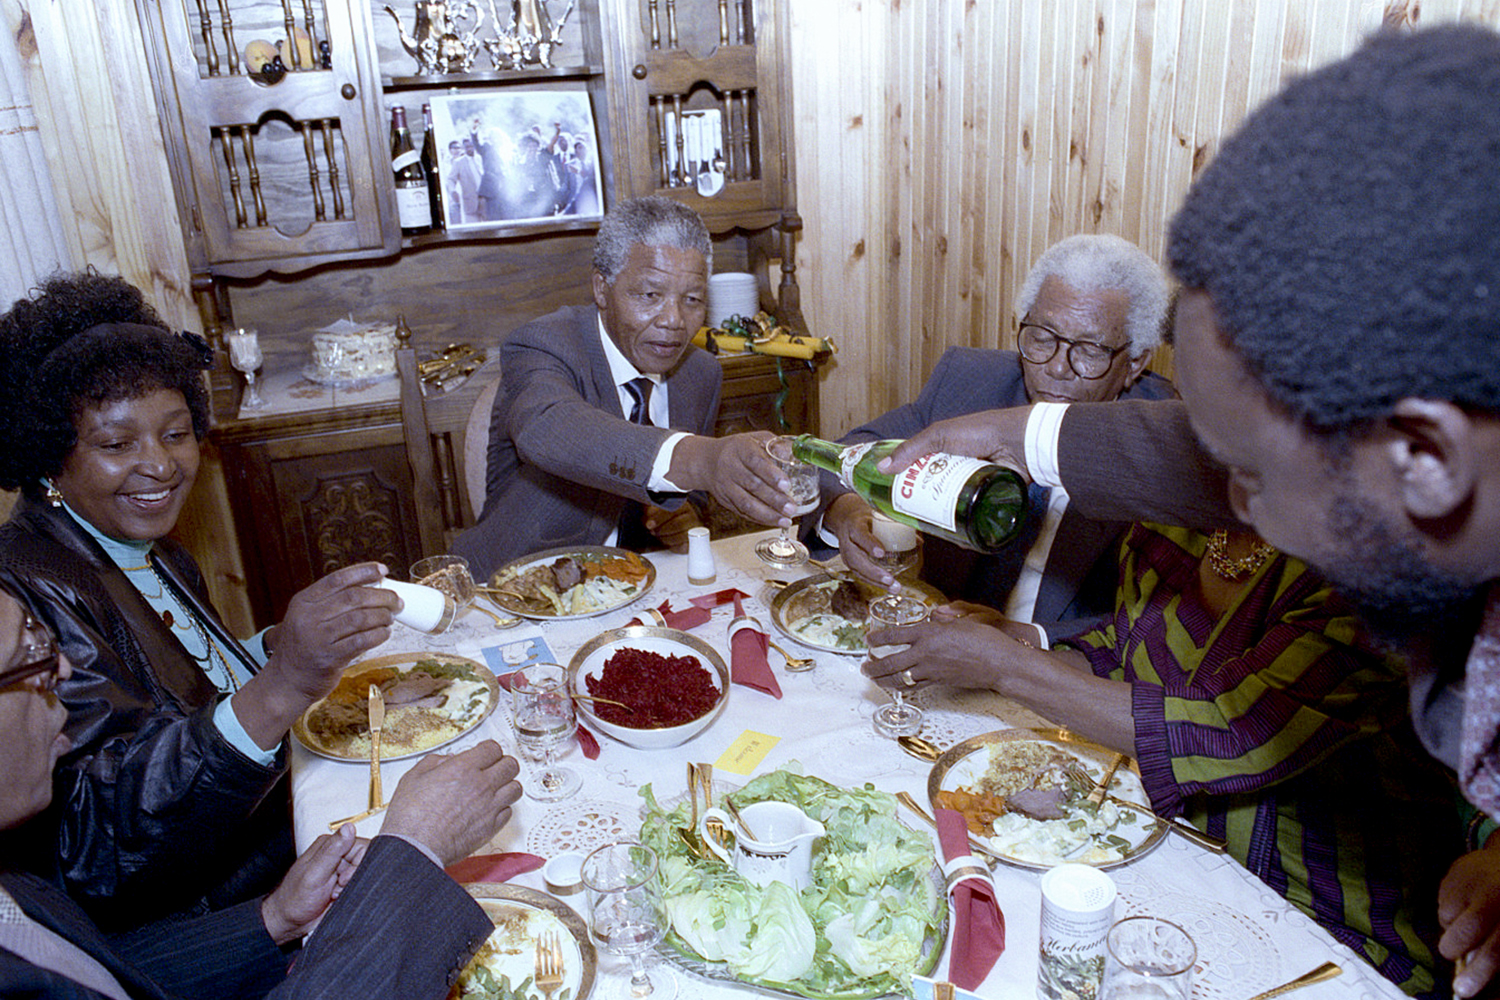 Nelson Mandela shares his first meal at the Mandela home in Soweto with his family and fellow inmate of 27 years, Walter Sisulu. The man pouring champagne, Cyril Ramaphosa, who many believe could be the next President of South Africa.